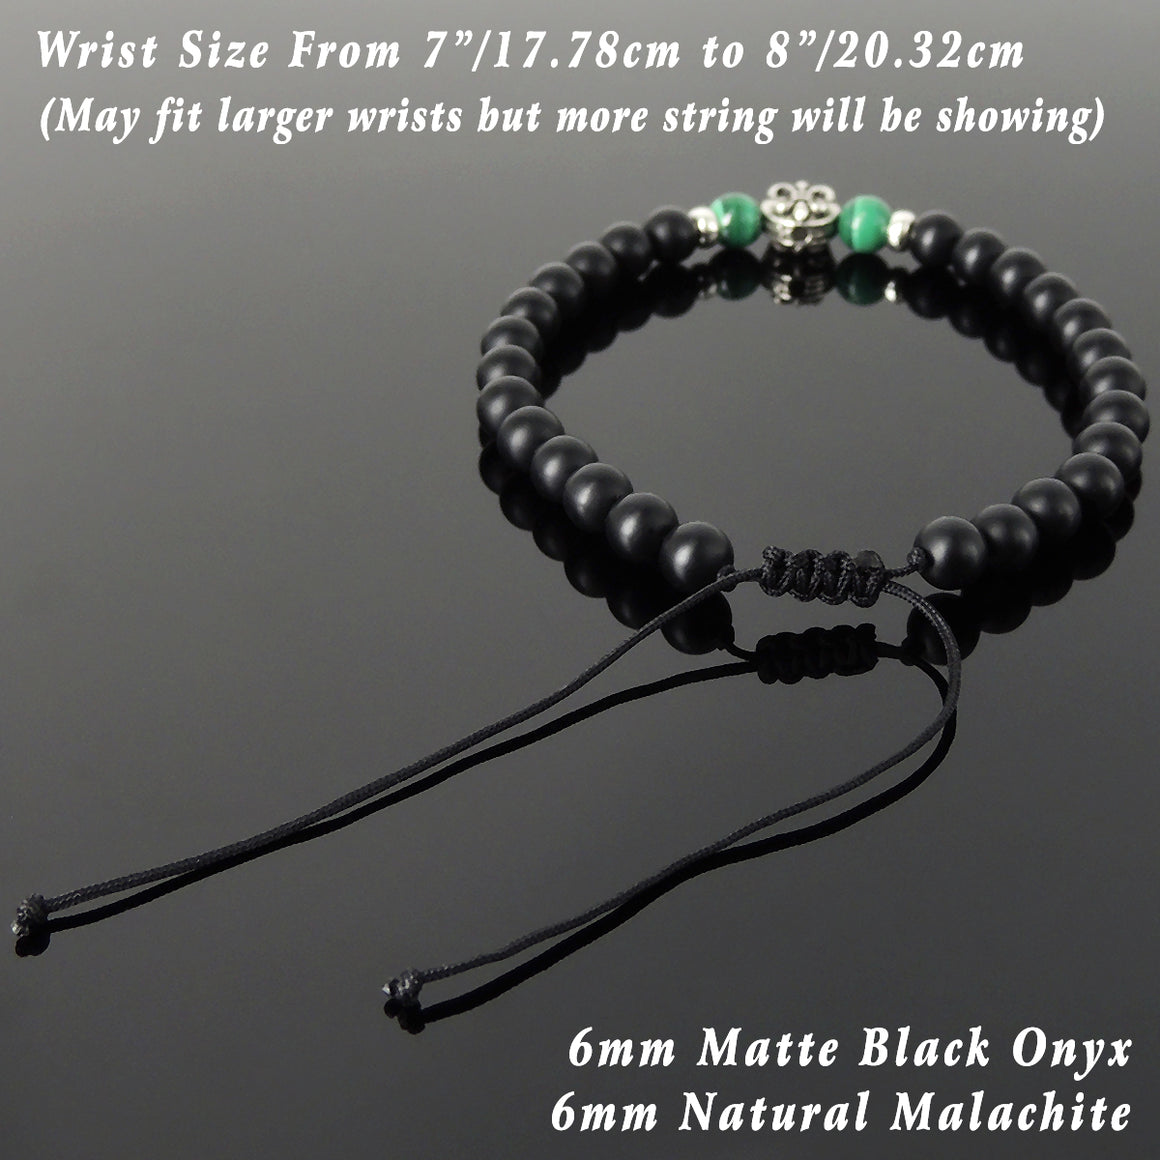 6mm Malachite & Matte Black Onyx Adjustable Braided Bracelet with S925 Sterling Silver Fleur de Lis Bead - Handmade by Gem & Silver BR1334